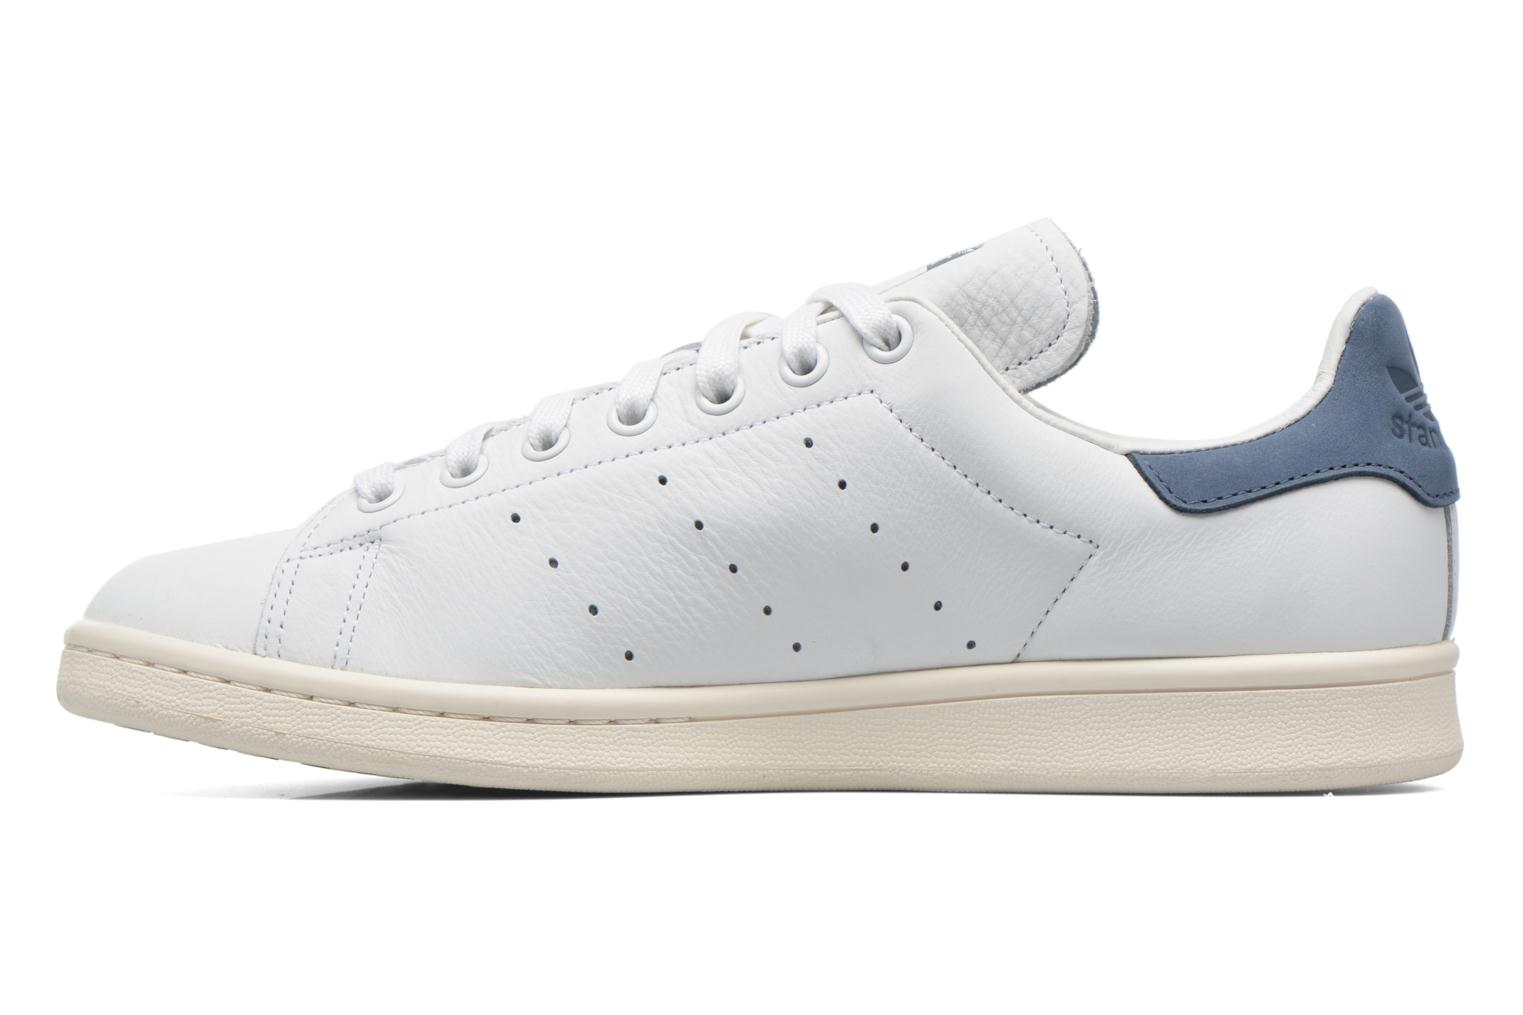 Stan Smith Ftwbla/Ftwbla/Enctec